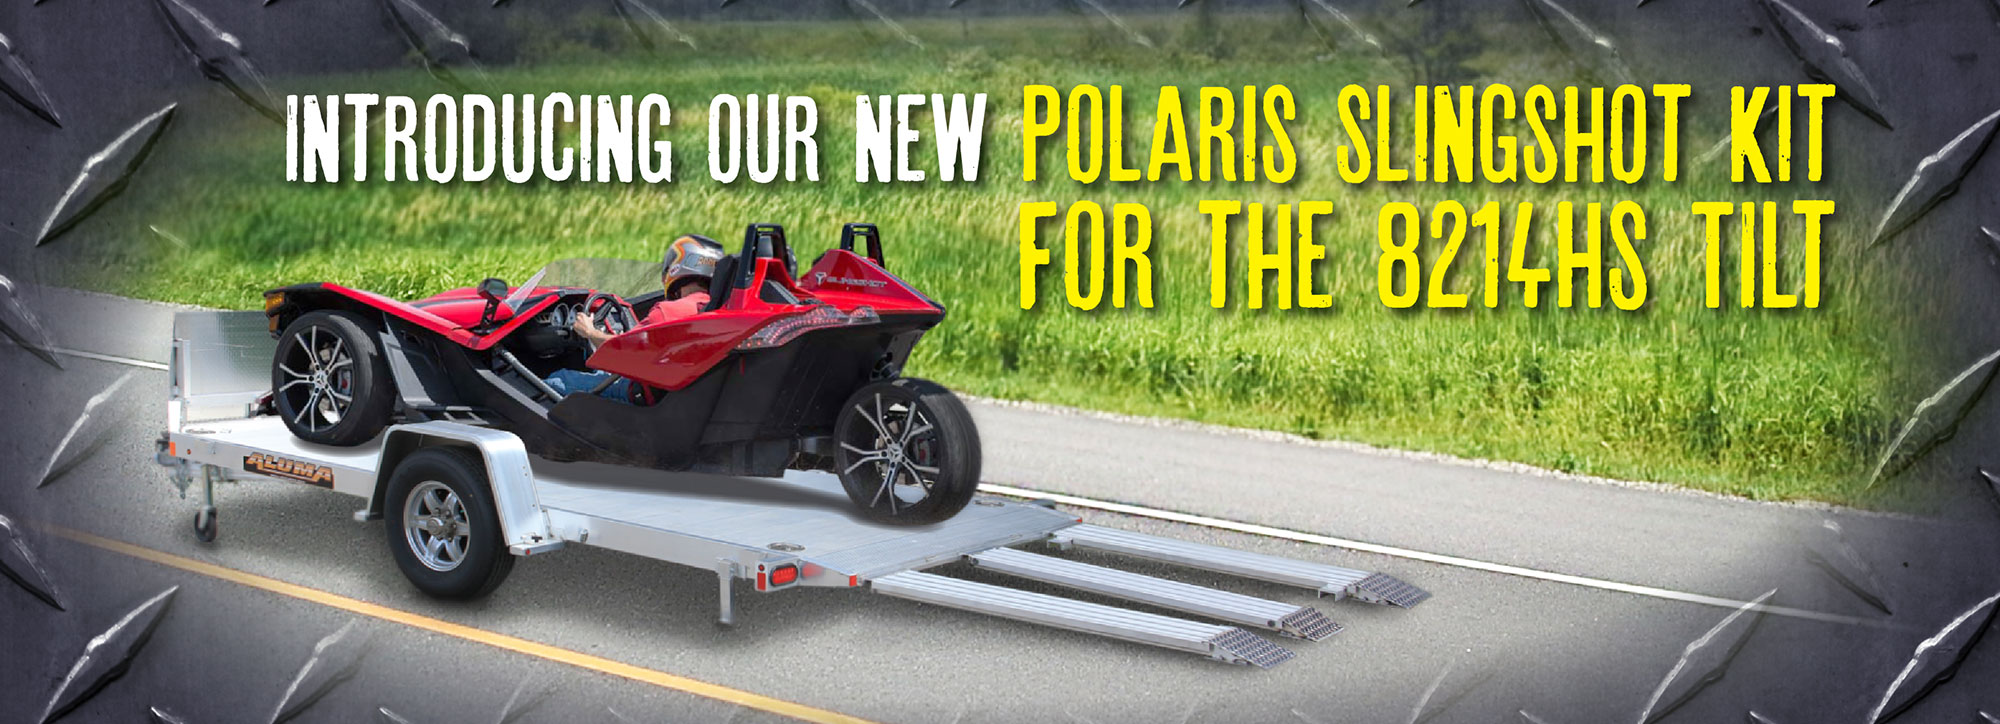 Introducing Our New Polaris Slingshot Kit